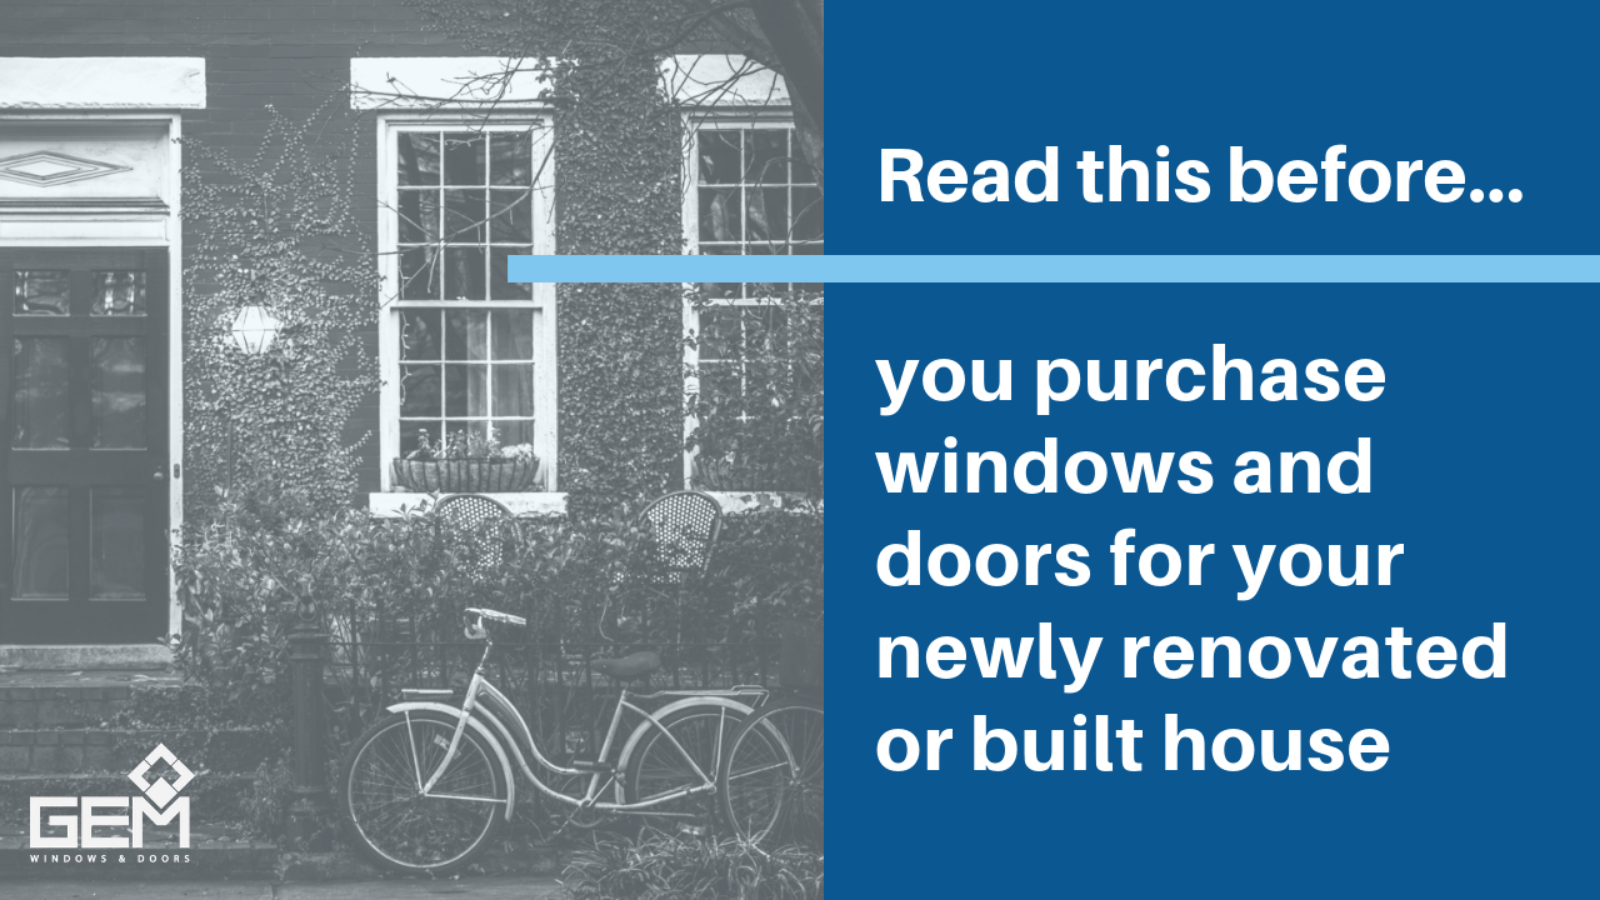 Read this before you purchase windows and doors